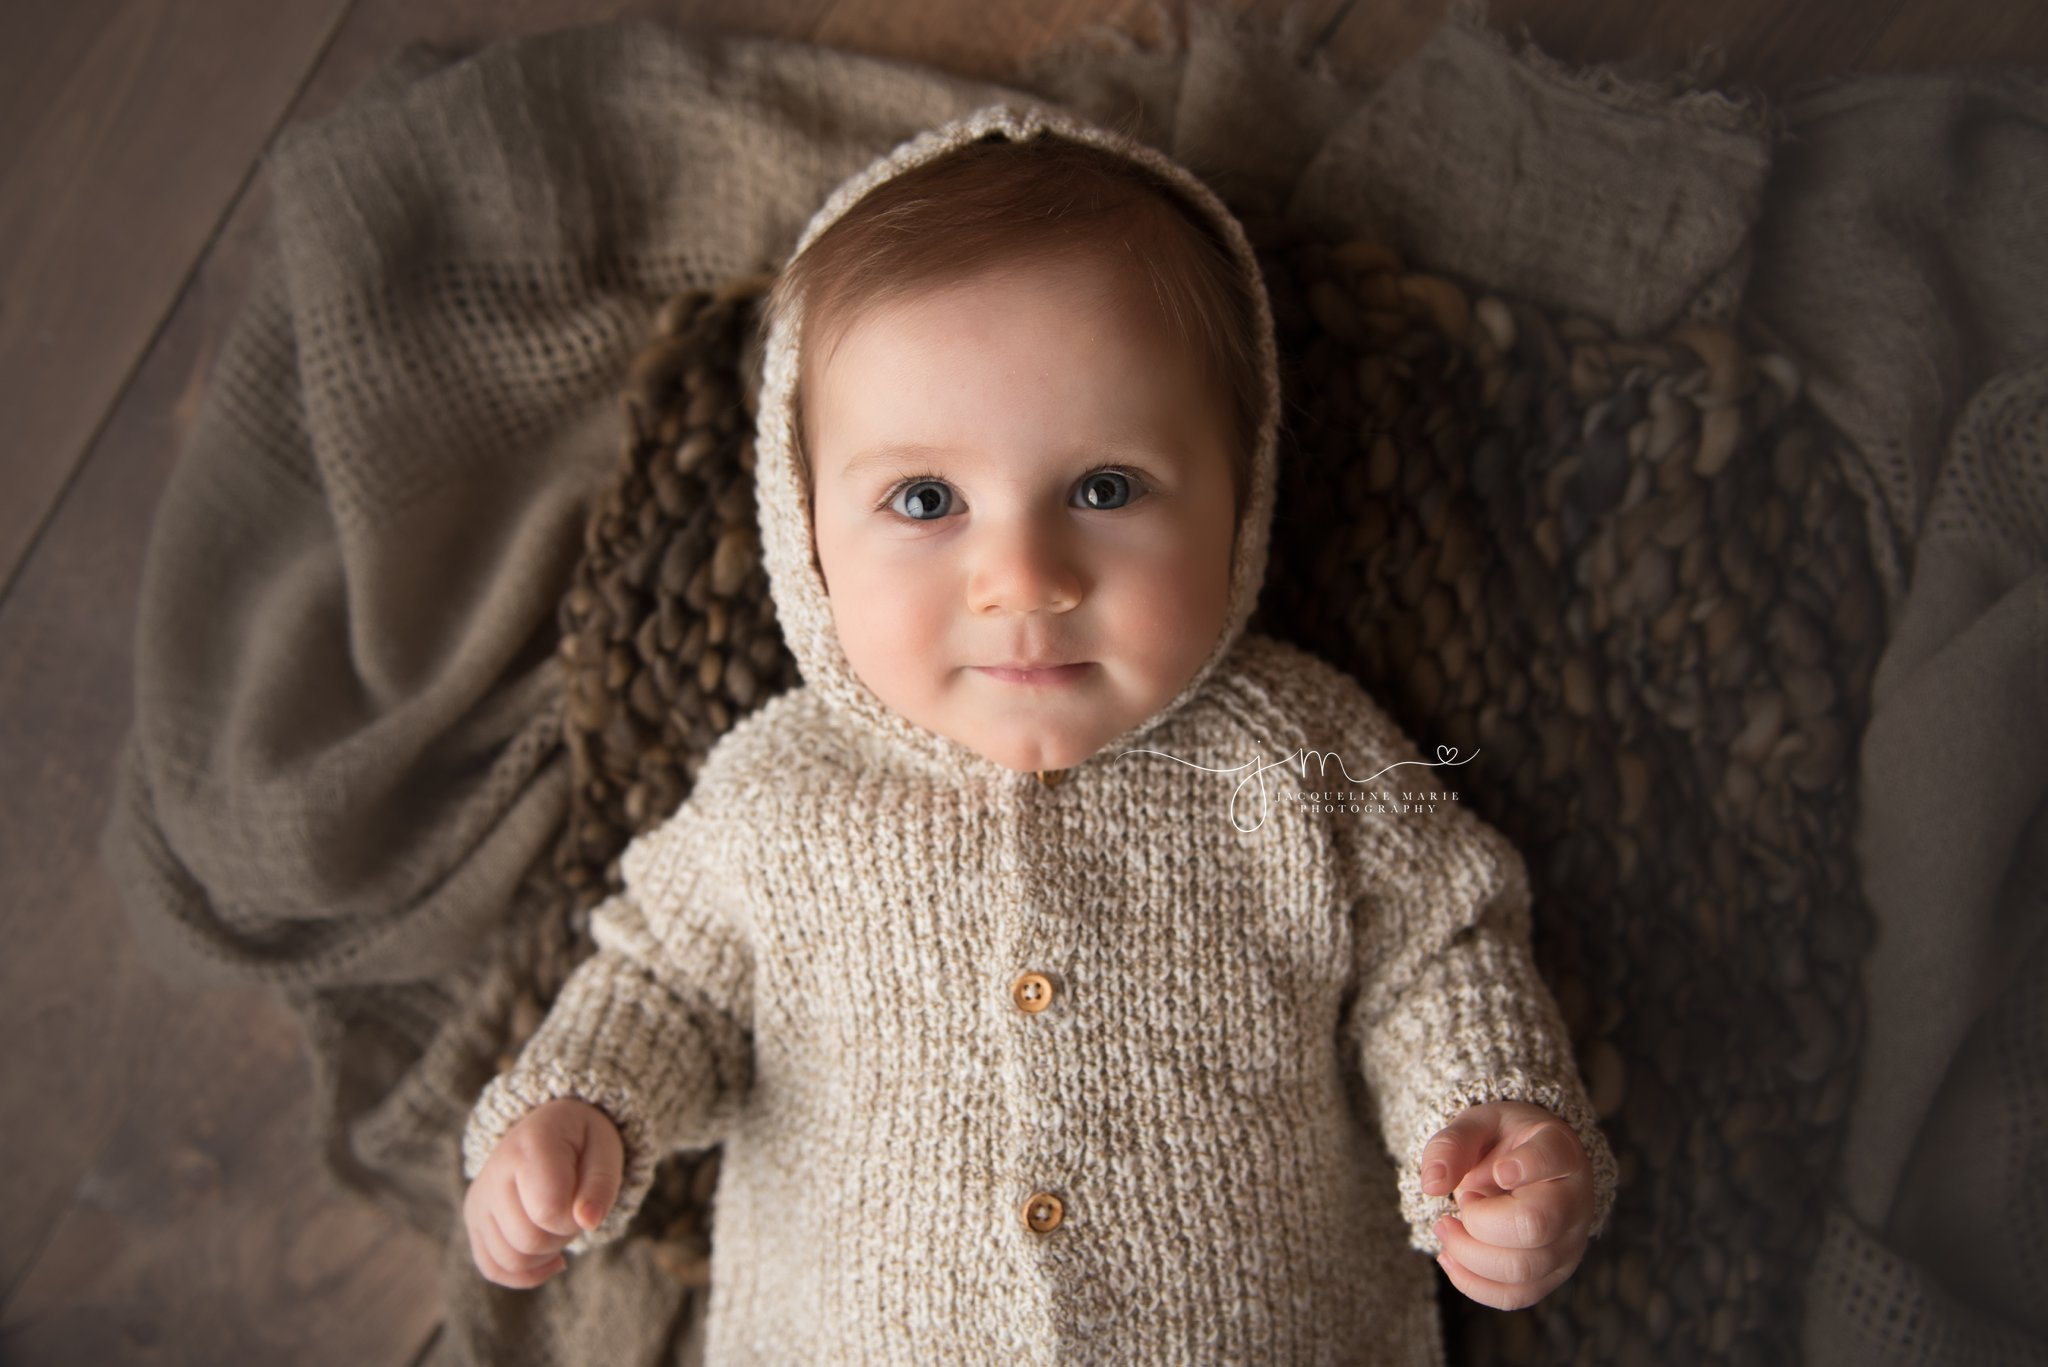 columbus ohio 6 month old baby boys wears hooded sweater at photography studio for milestone pictures